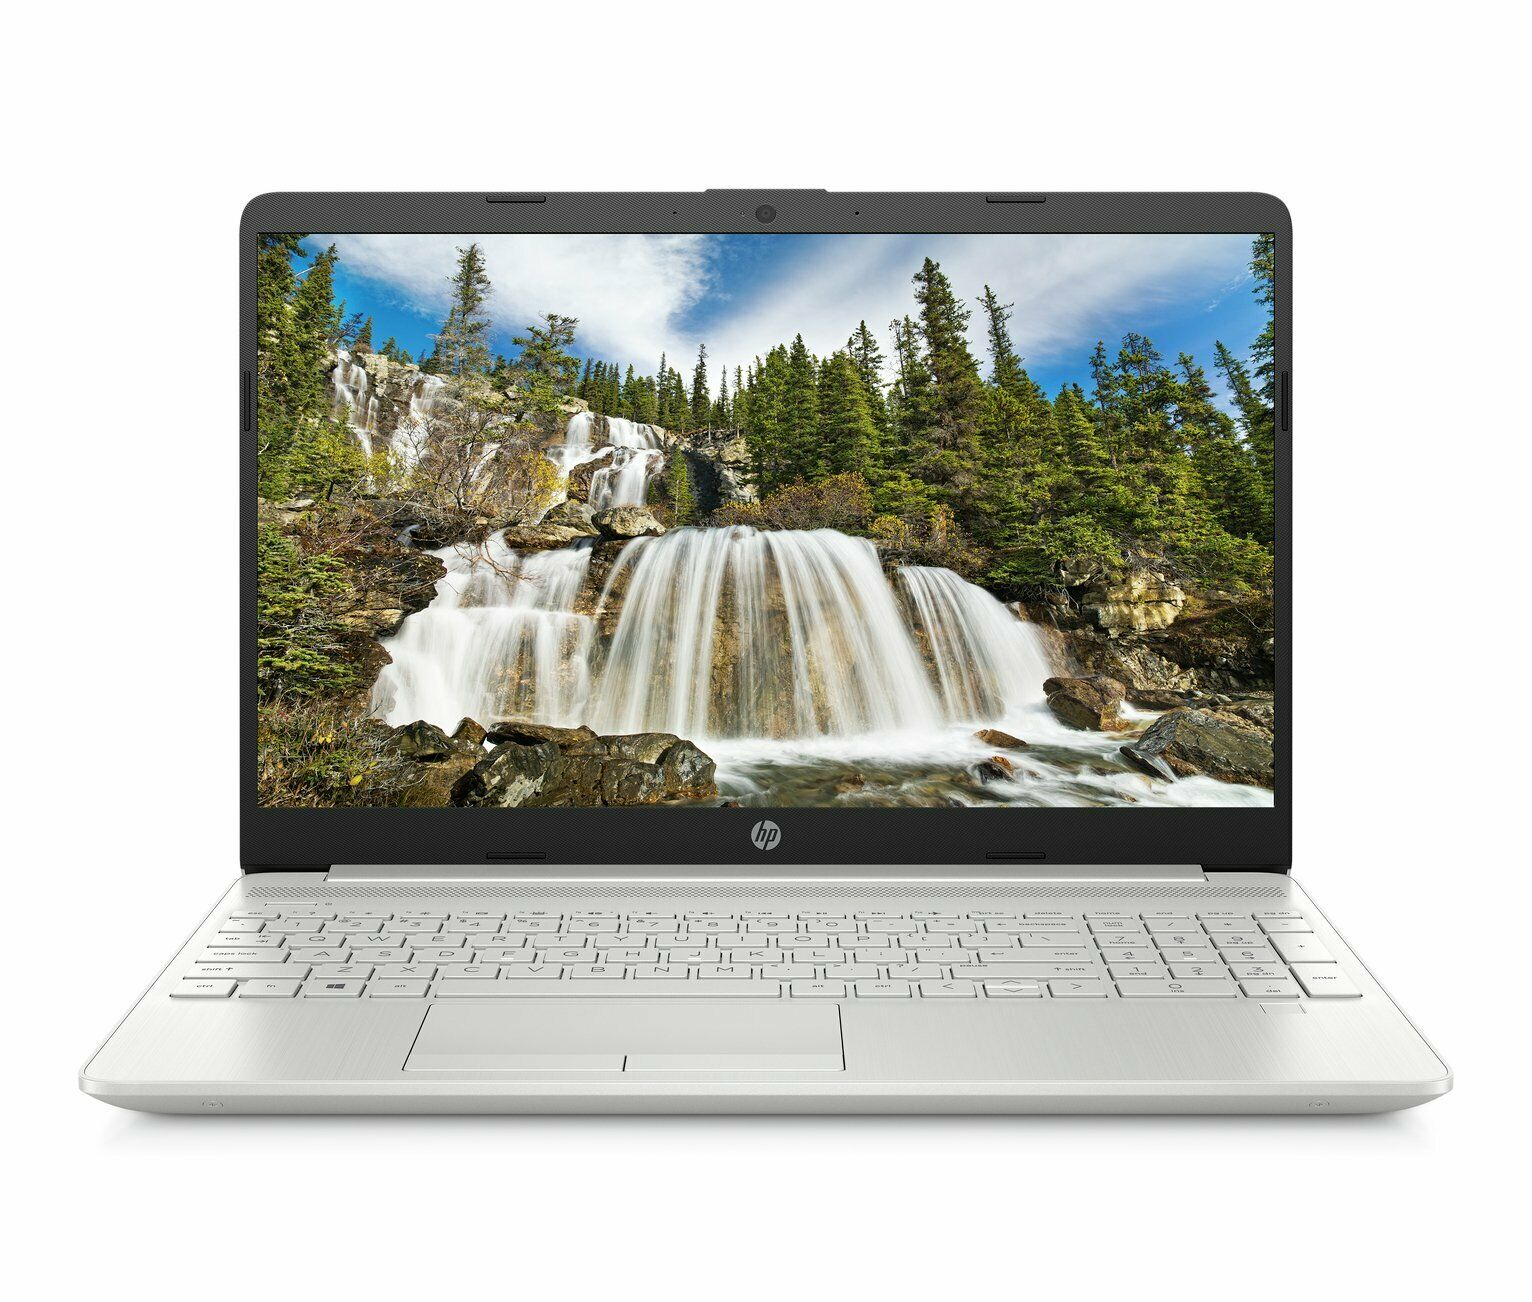 Hp 15s Fq0019na 15 6 Intel Core I3 8130u 4gb Ram 128gb Ssd Laptop Silver For Sale Online Ebay